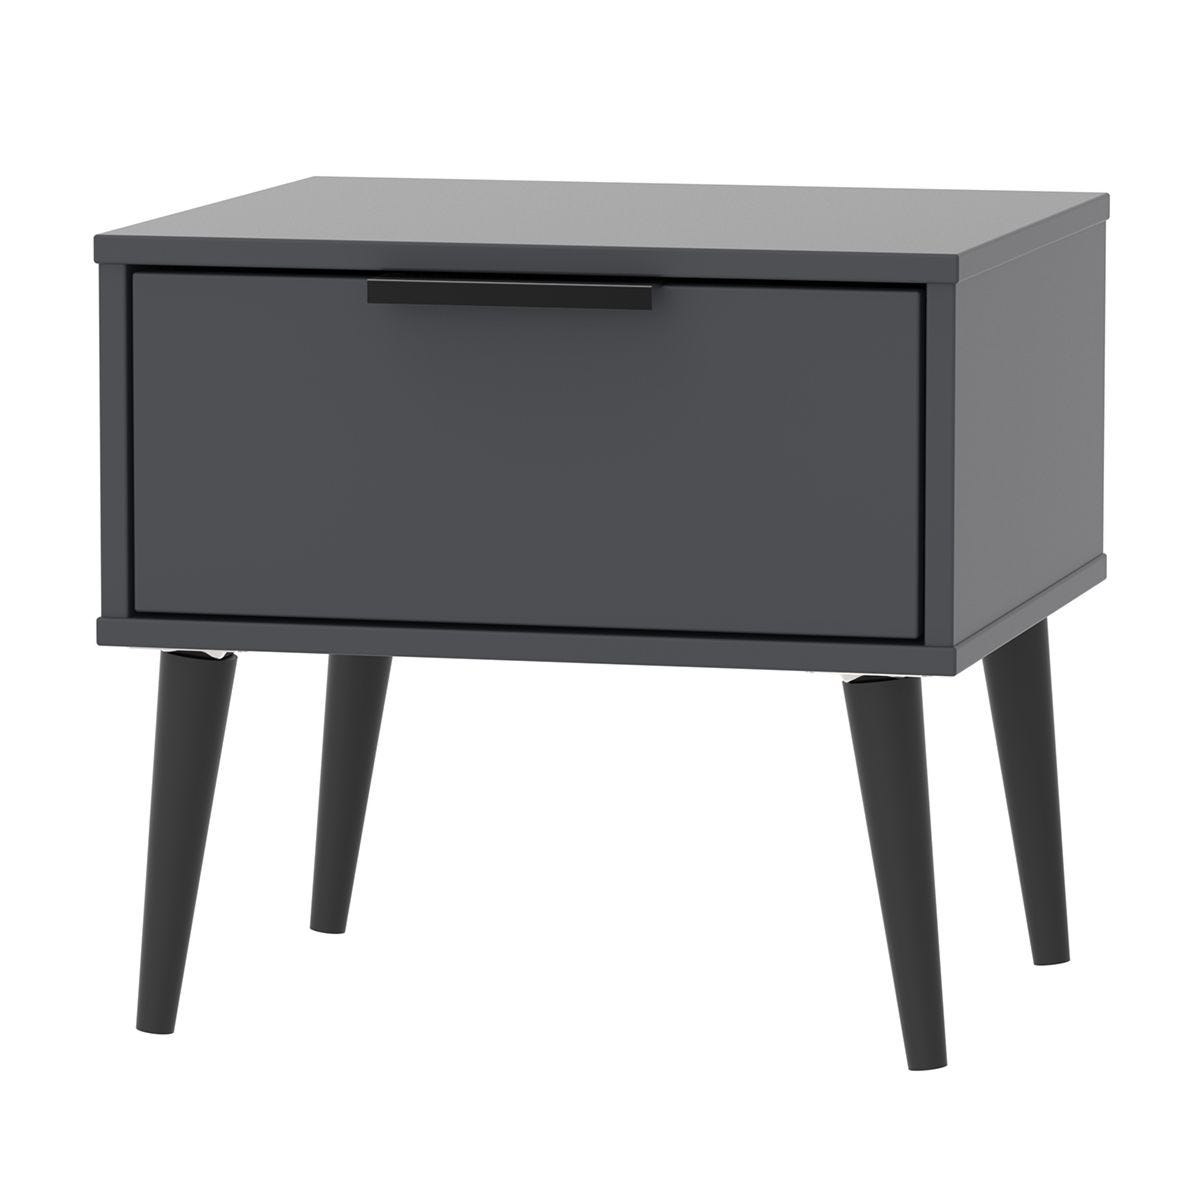 Hirato 1 Drawer Black Locker With Black Wooden Legs